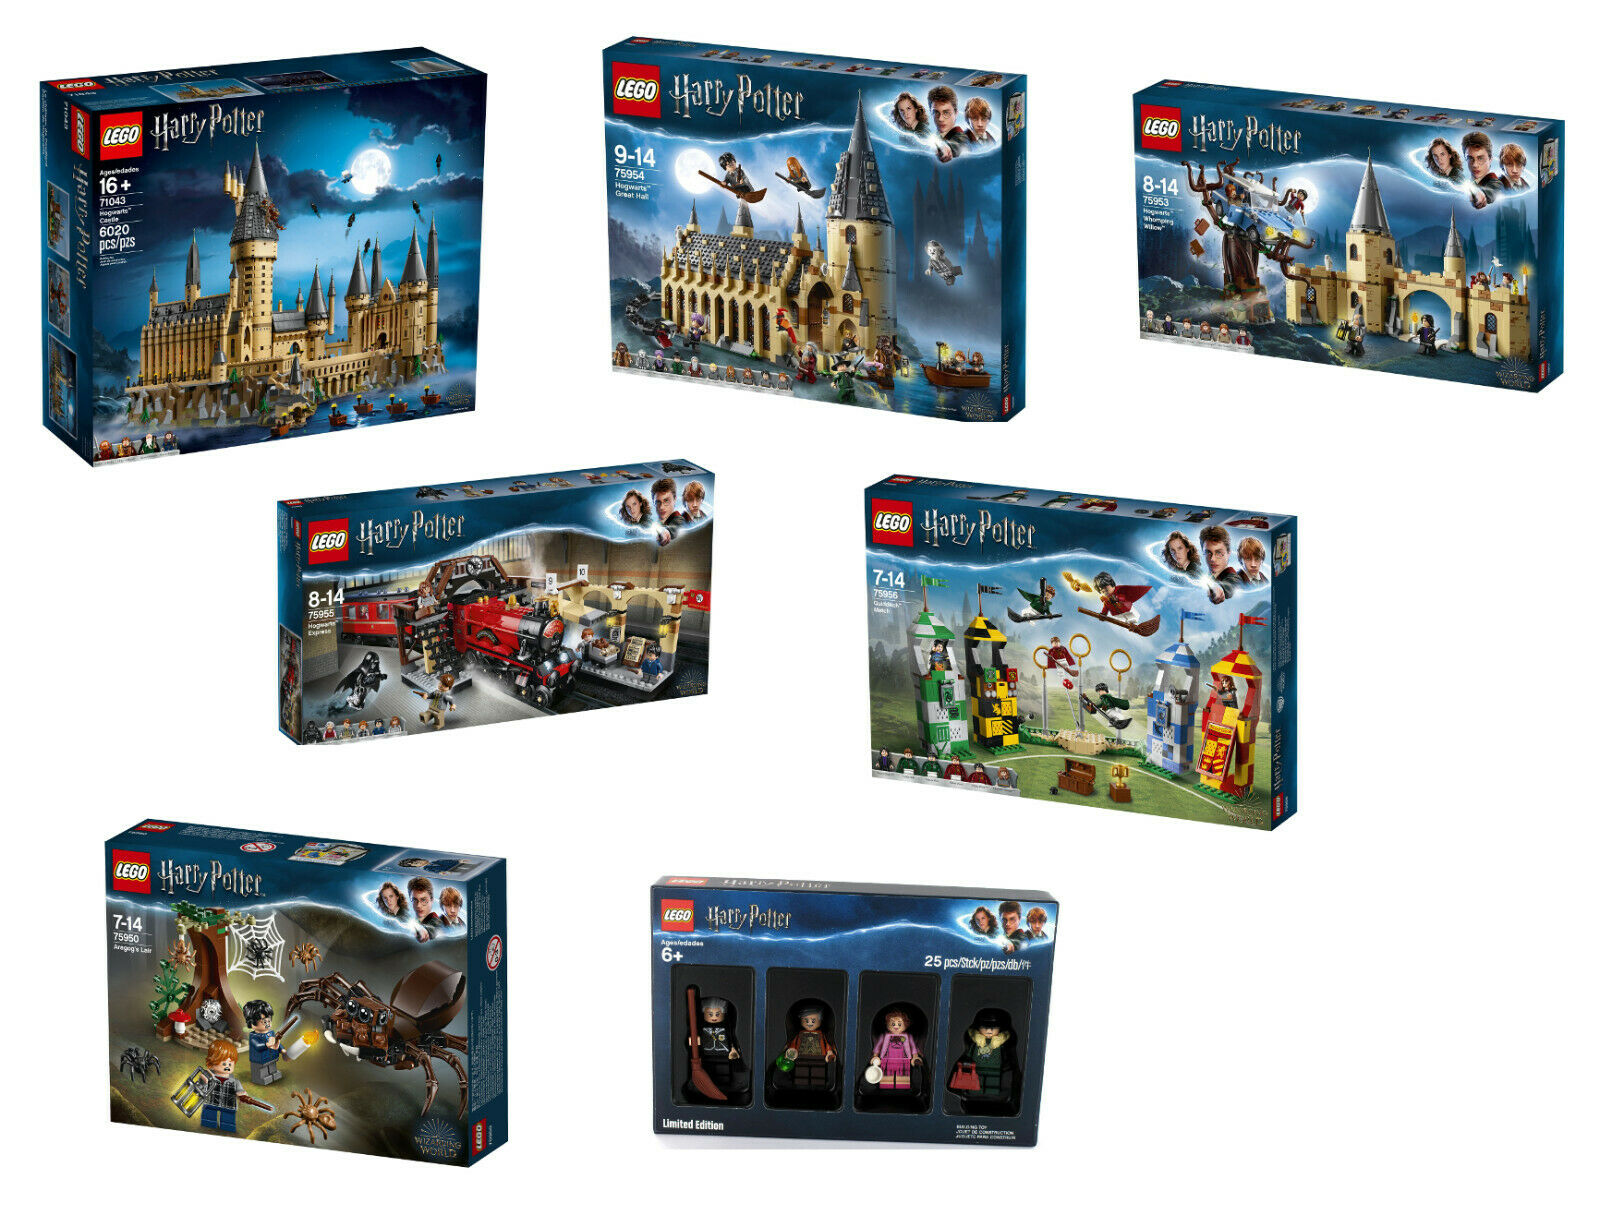 Lego Harry Potter 7er set 71043+75954+75953+75956+75950+75955+5005254, nuevo